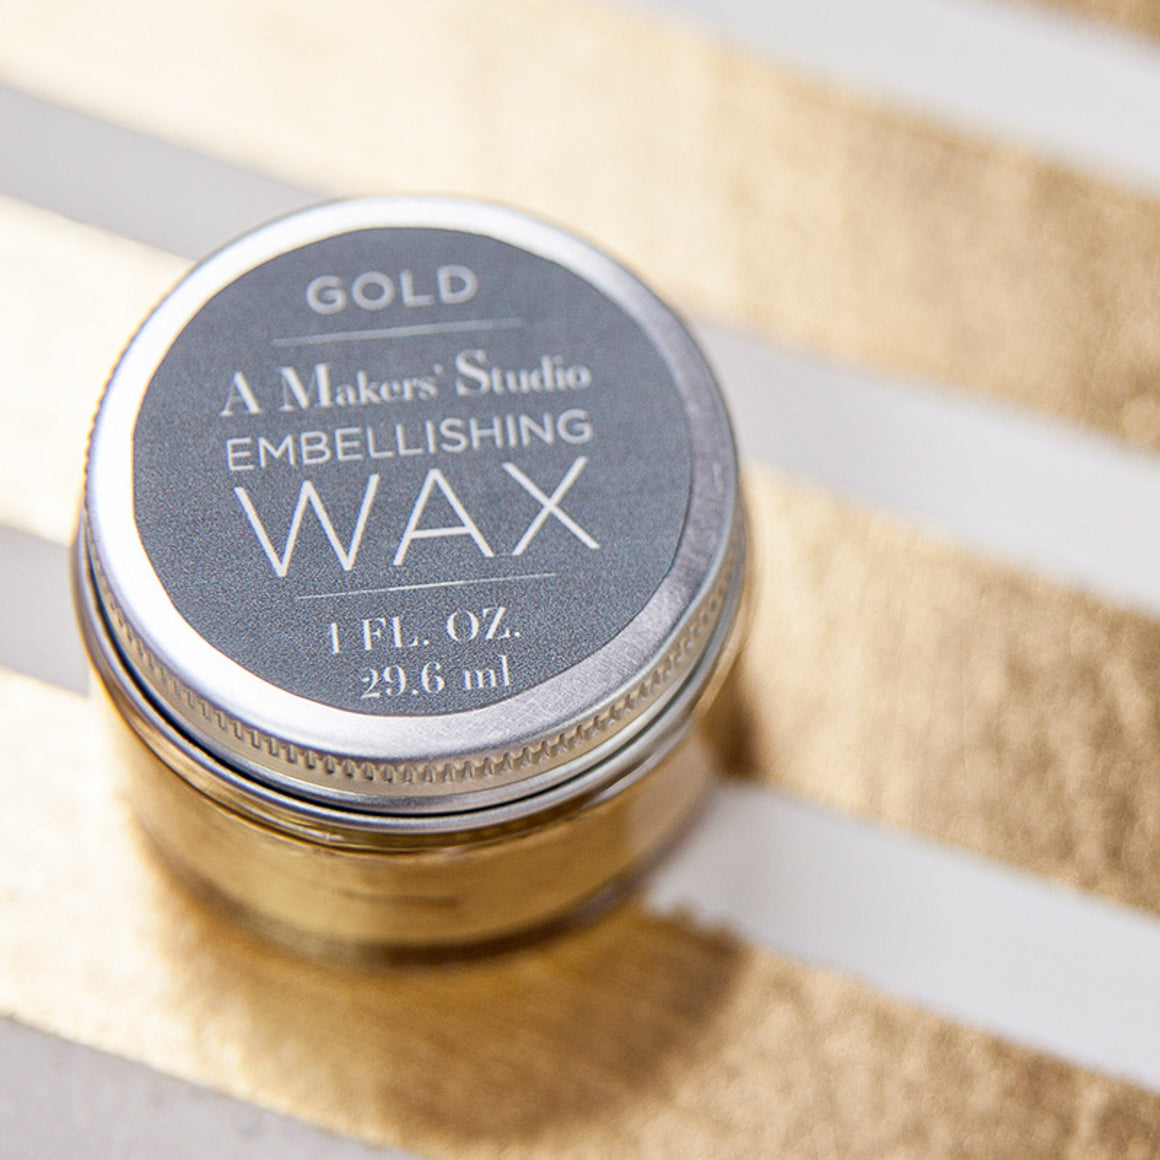 Gold Embellishing Wax - 1 oz.